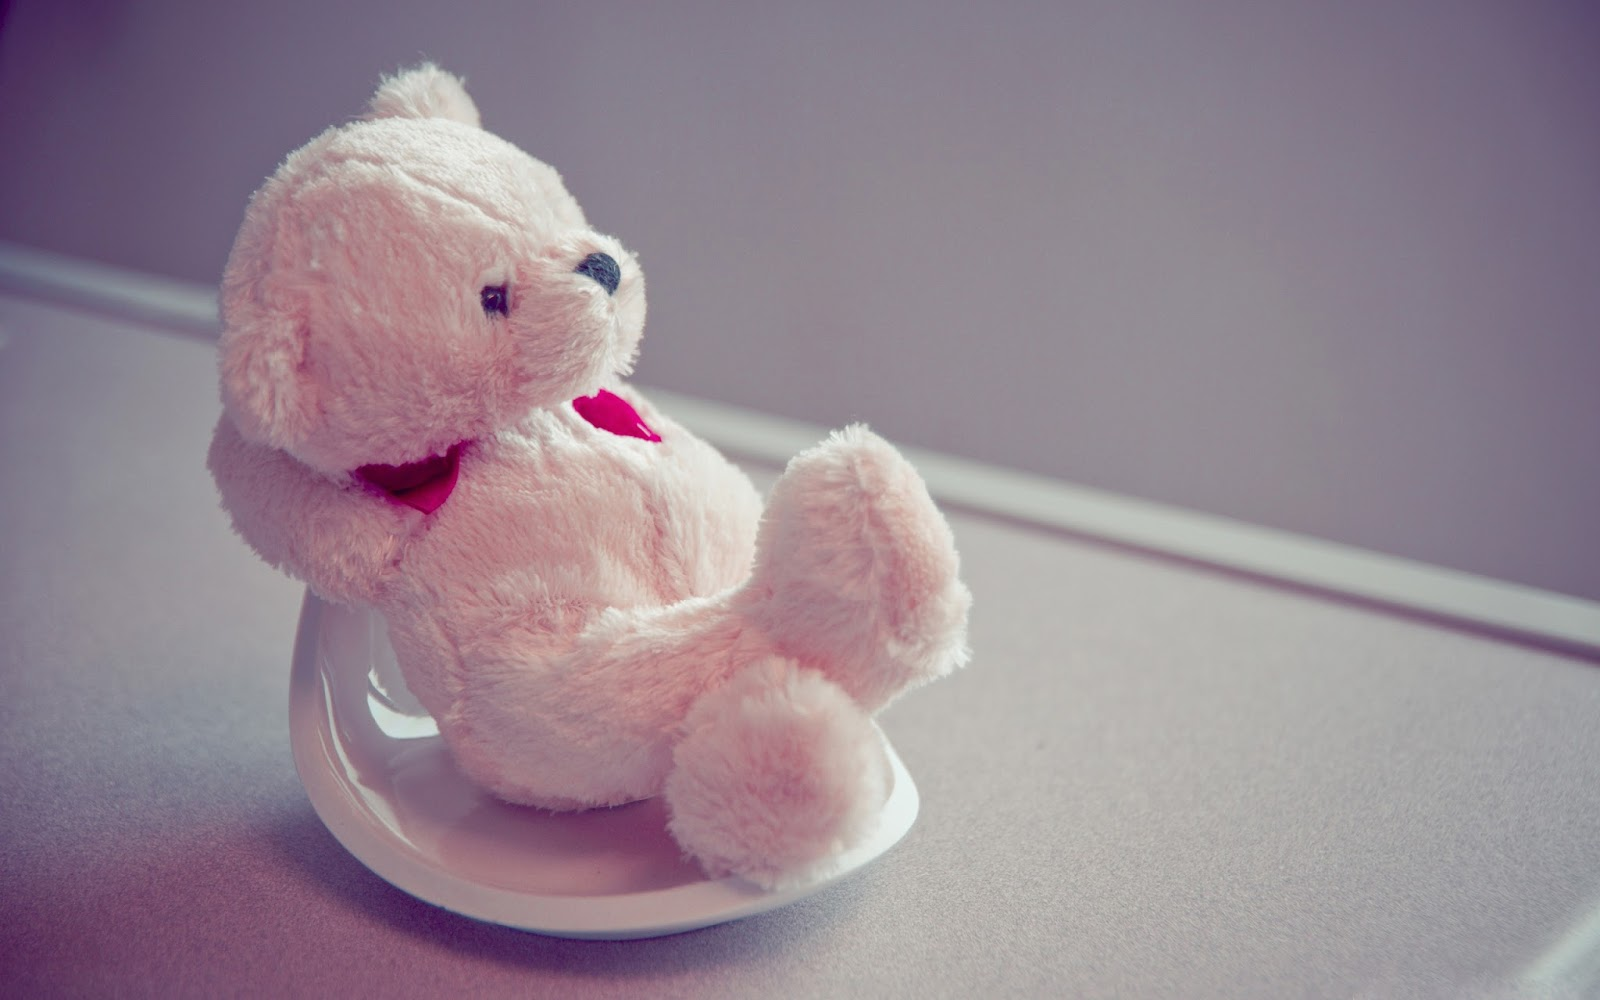 Teddy-Bear-in-love-mood-Wallpaper.jpg